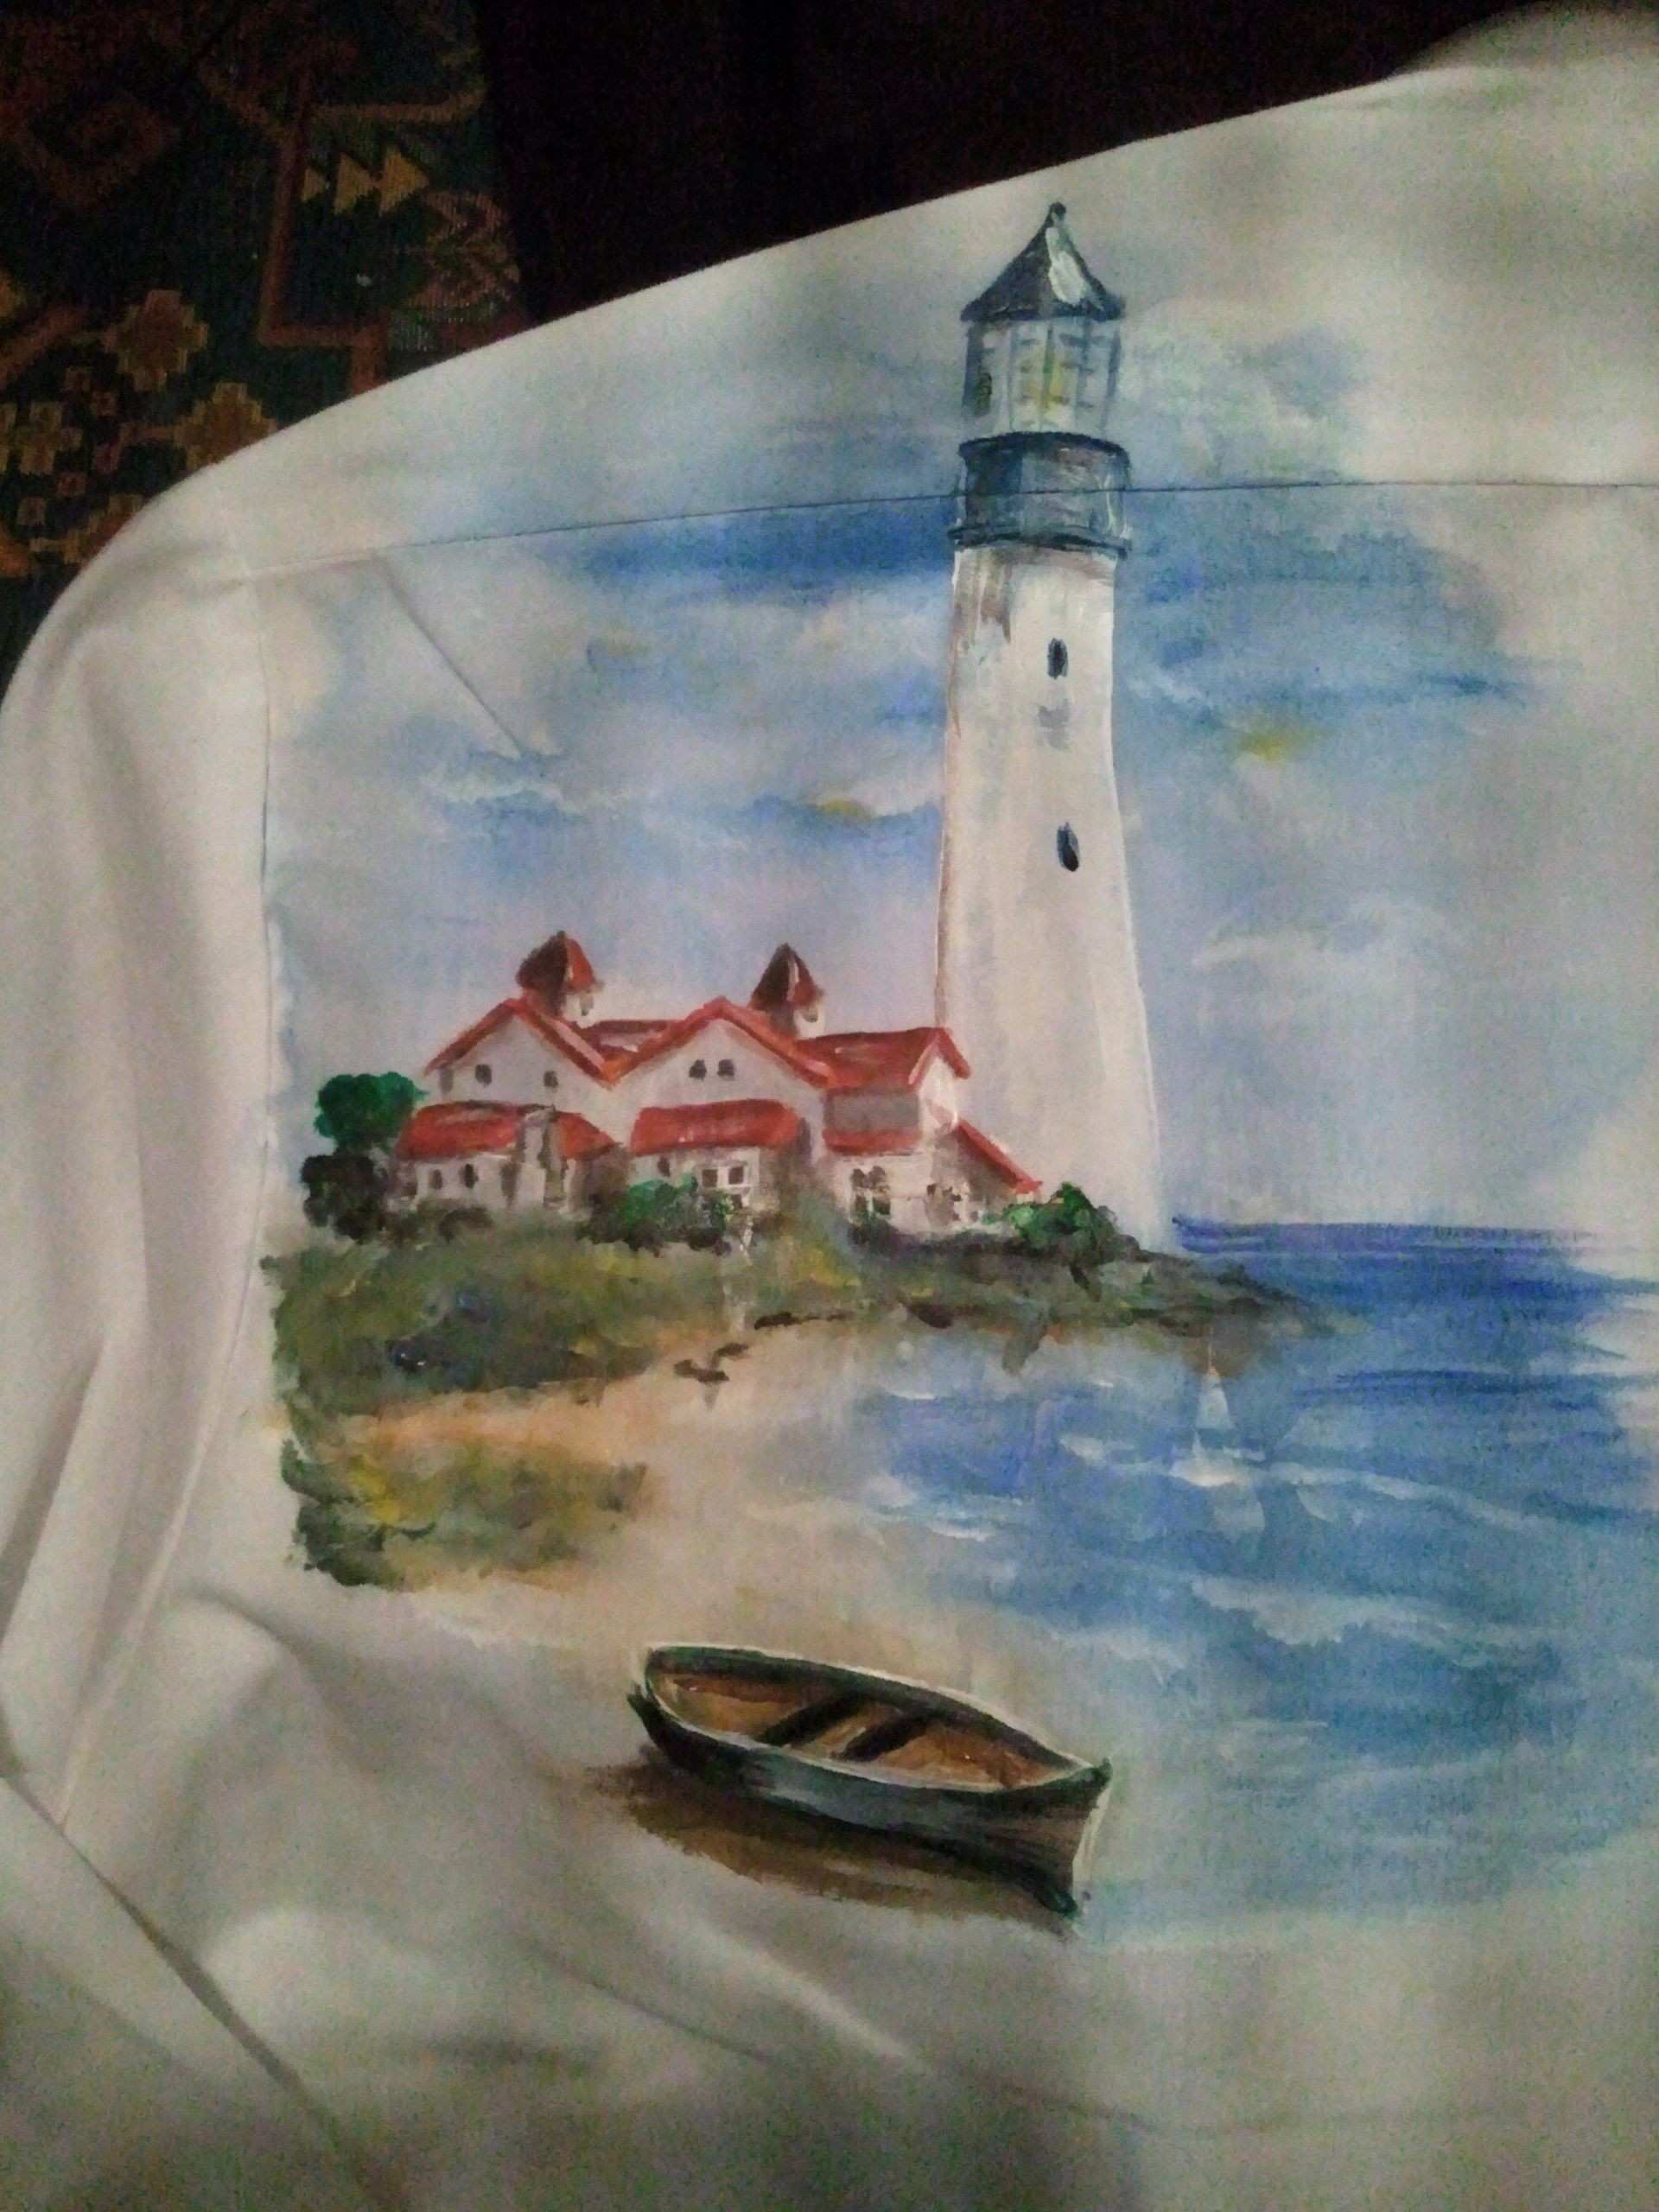 Back of one of my recent Hand Painted Tuxedo Shirt done in acrylics